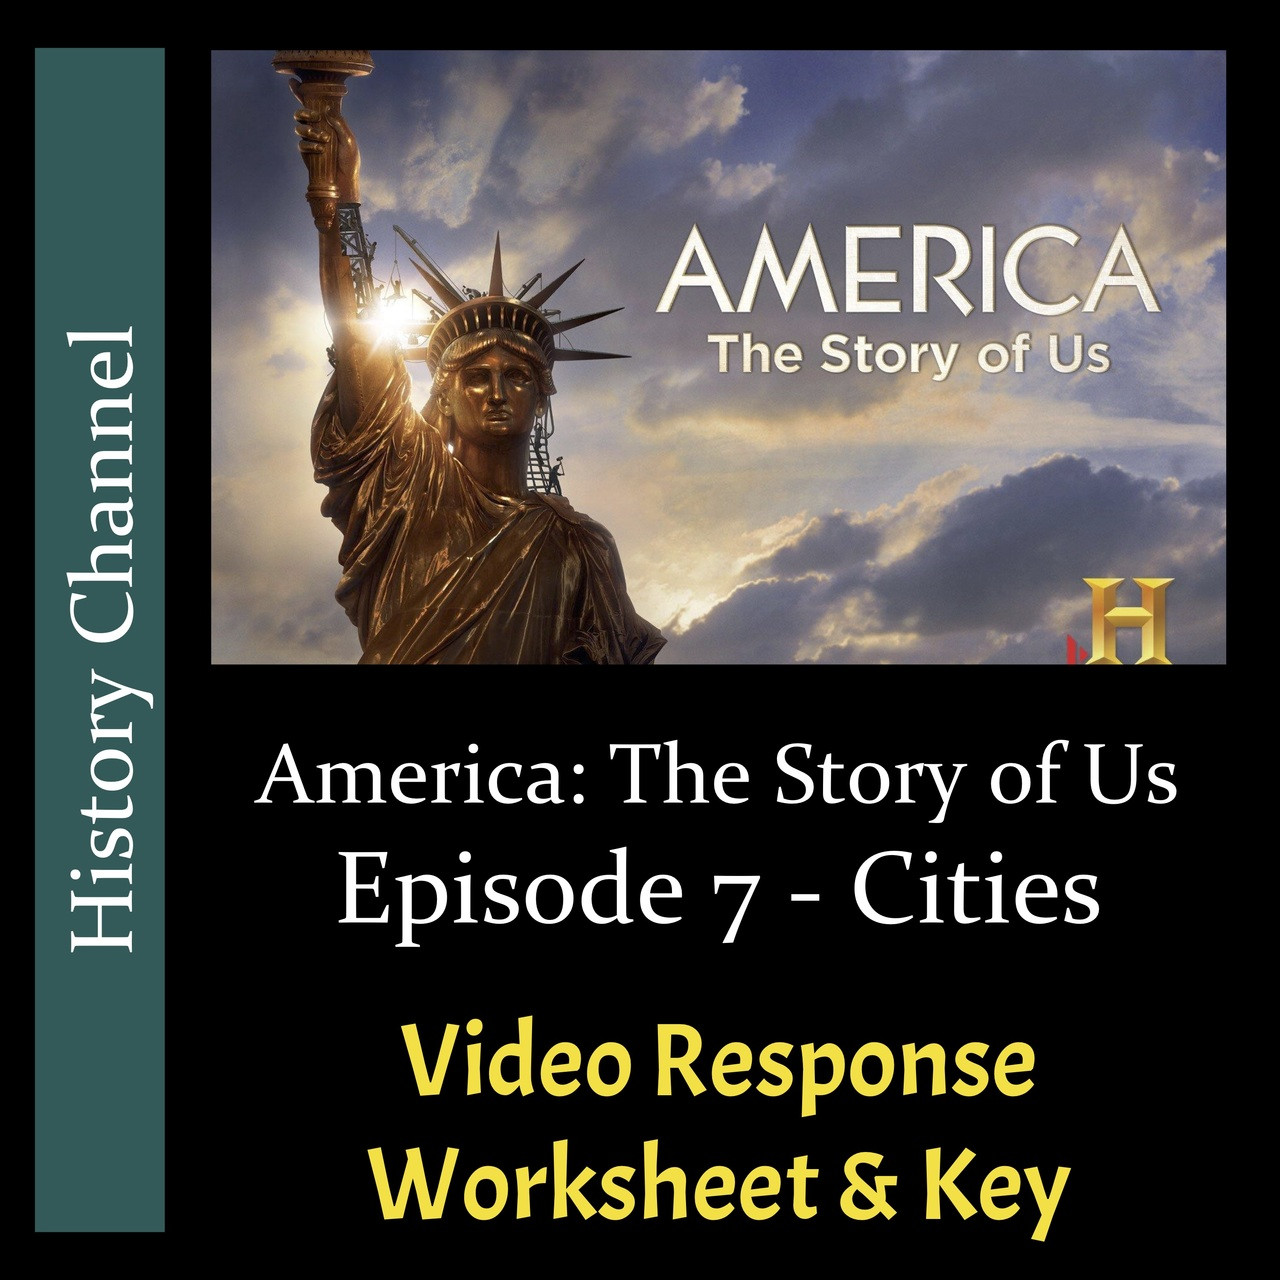 America The Story of Us - Episode 07: Cities - Video Response Worksheet & Key (Editable)